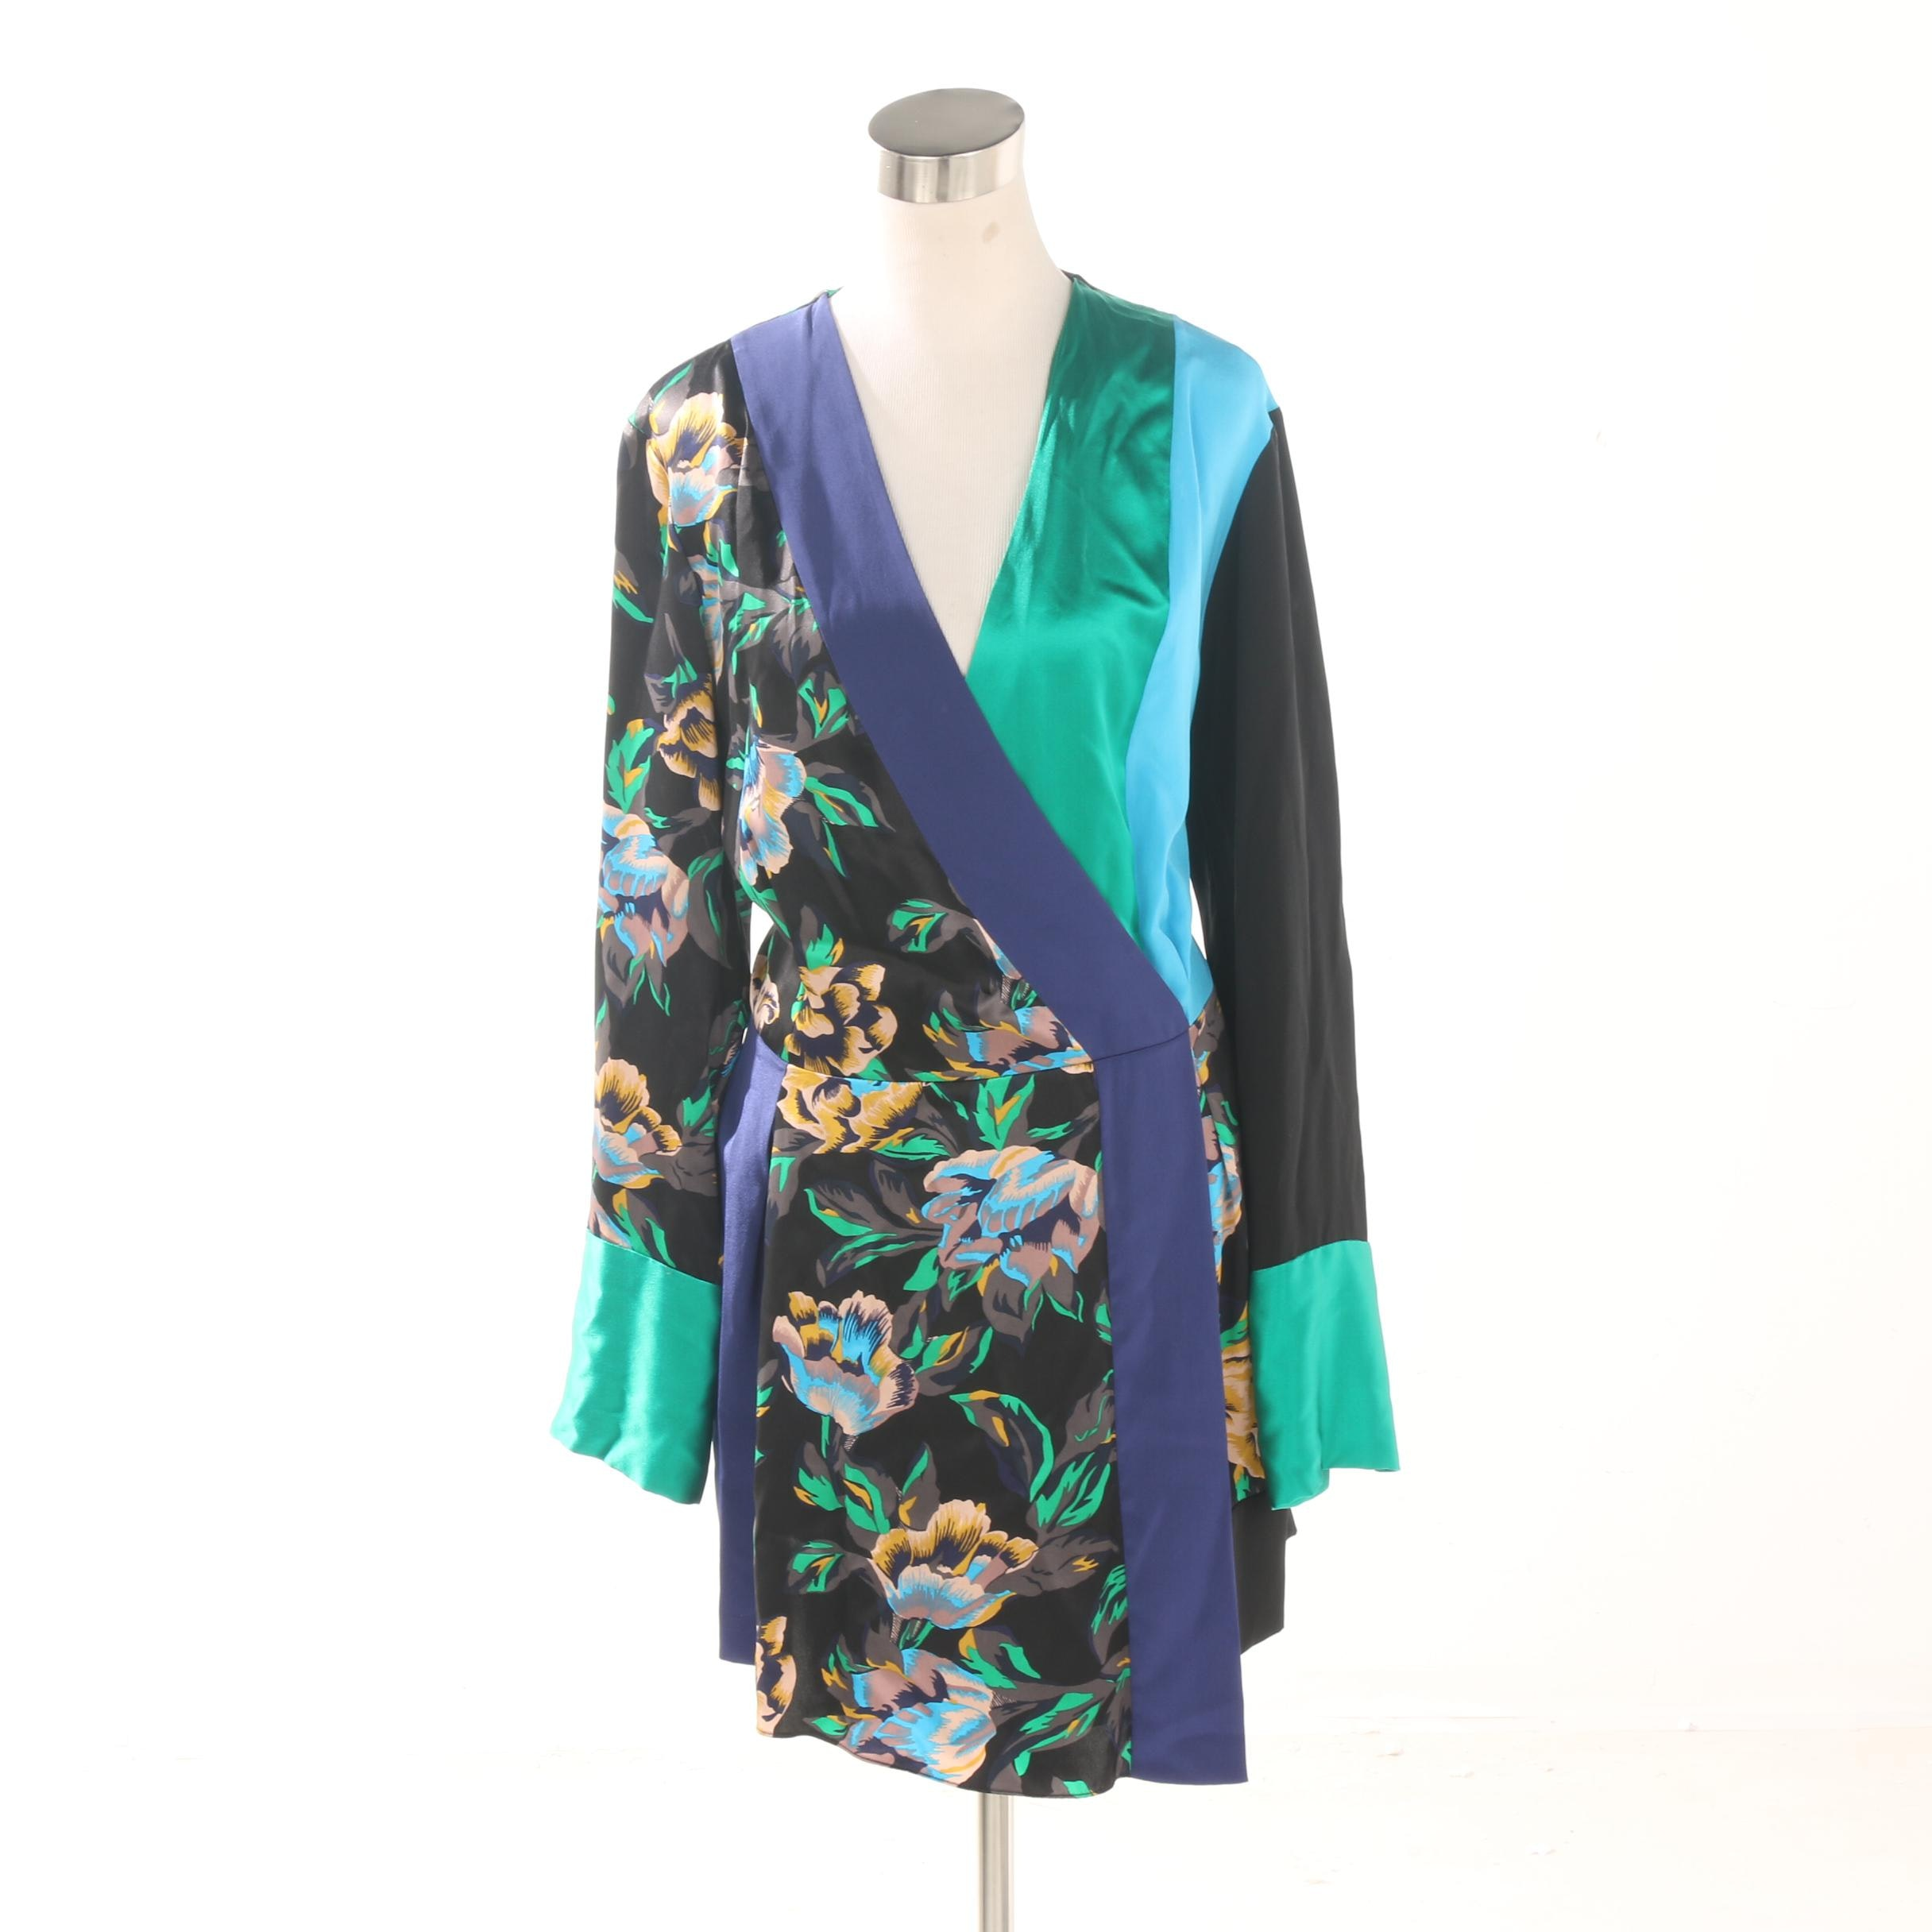 Diane von Furstenberg Floral Silk Crossover Dress